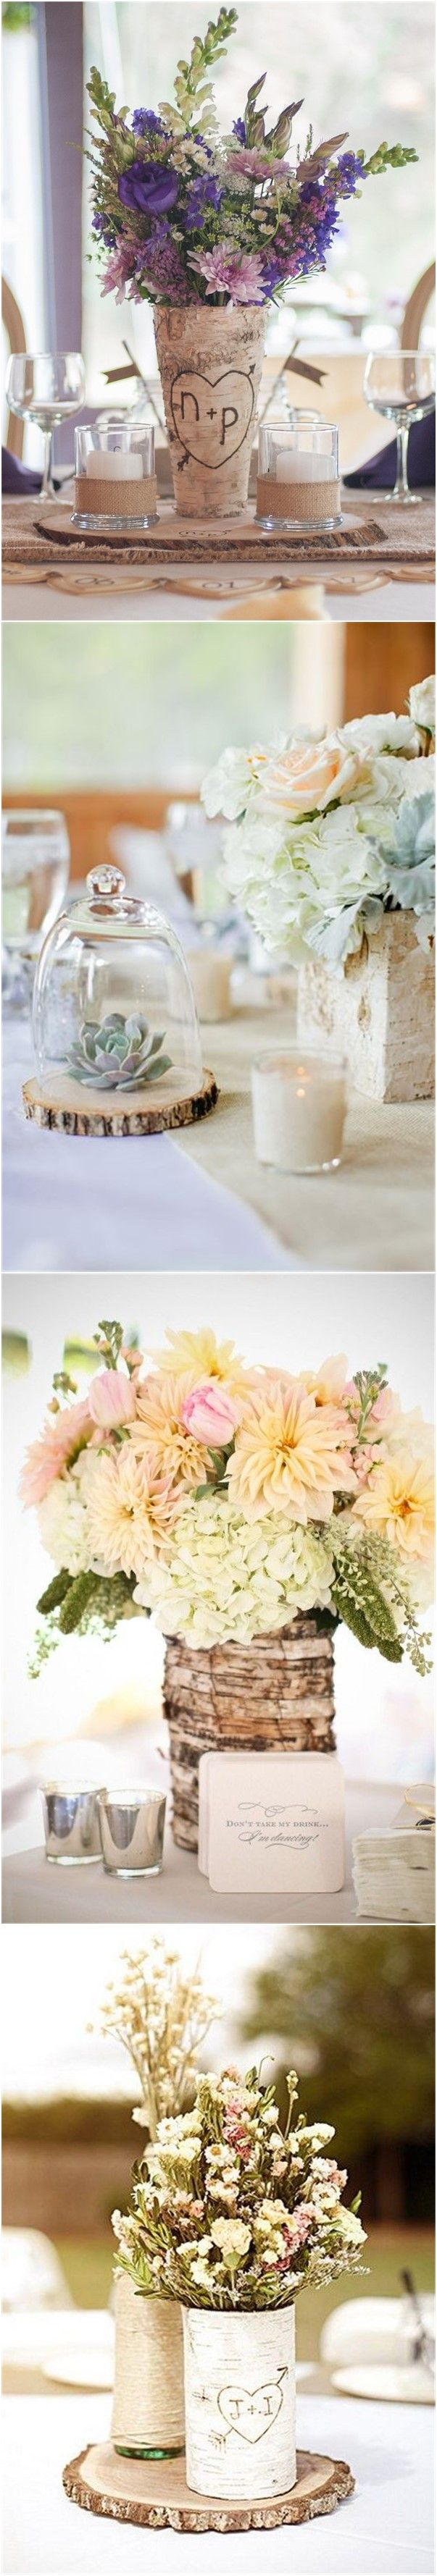 Wedding Centerpieces » 26 Ideas to Rock Your Winter Wedding with ...